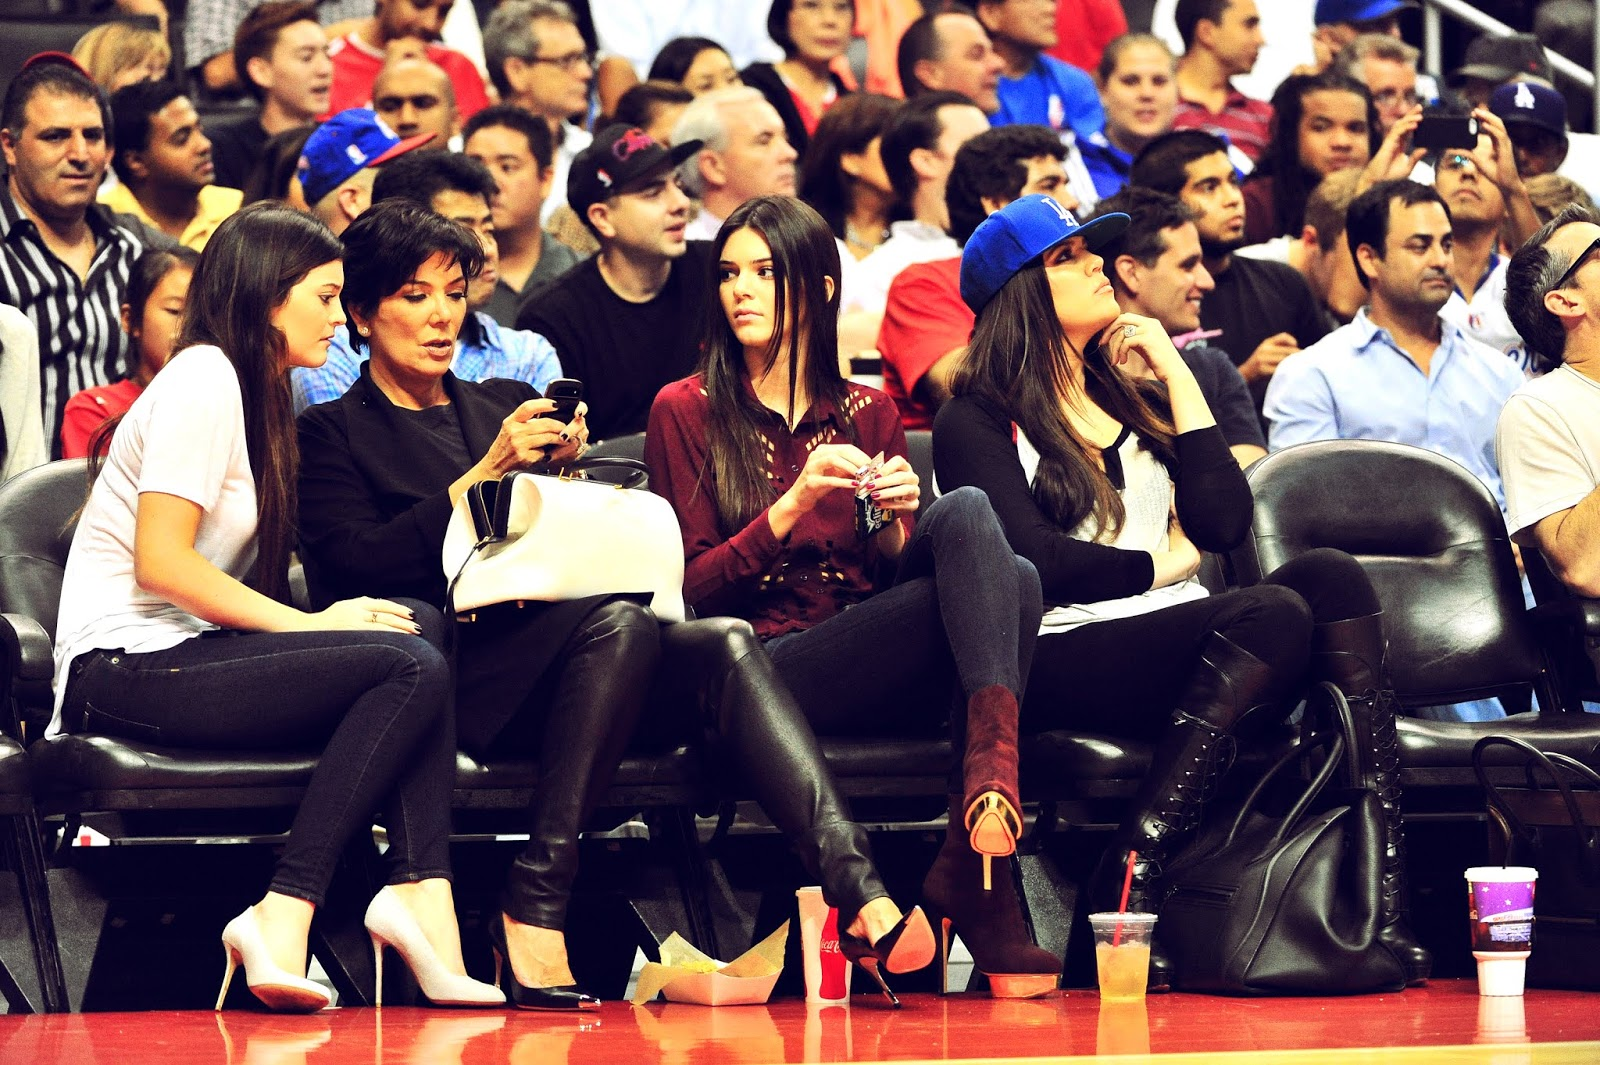 17 - Watching The Los Angeles Clippers Game on October 17, 2012